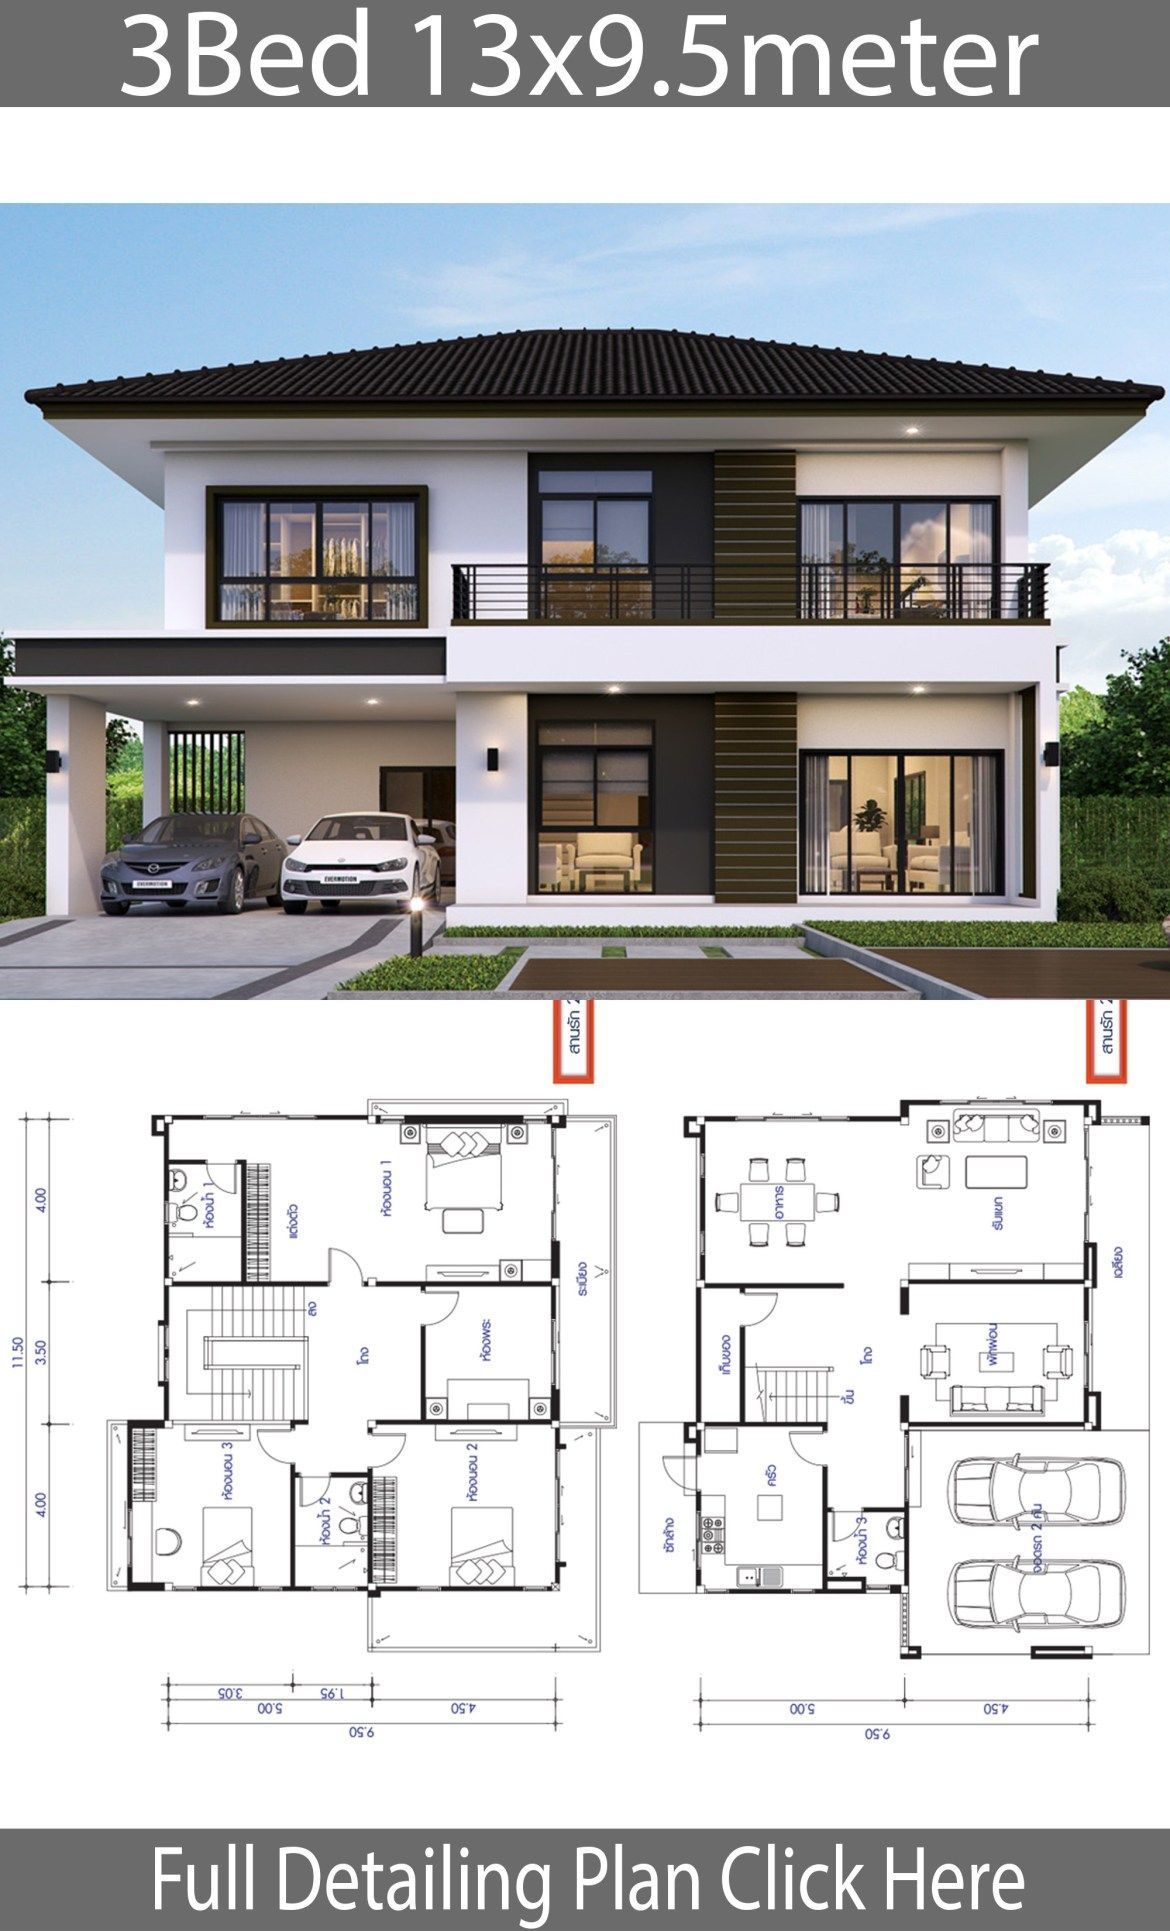 House Design Plan 13x9 5m With 3 Bedrooms Home Ideas In 2020 Architectural House Plans House Designs Exterior Bedroom House Plans